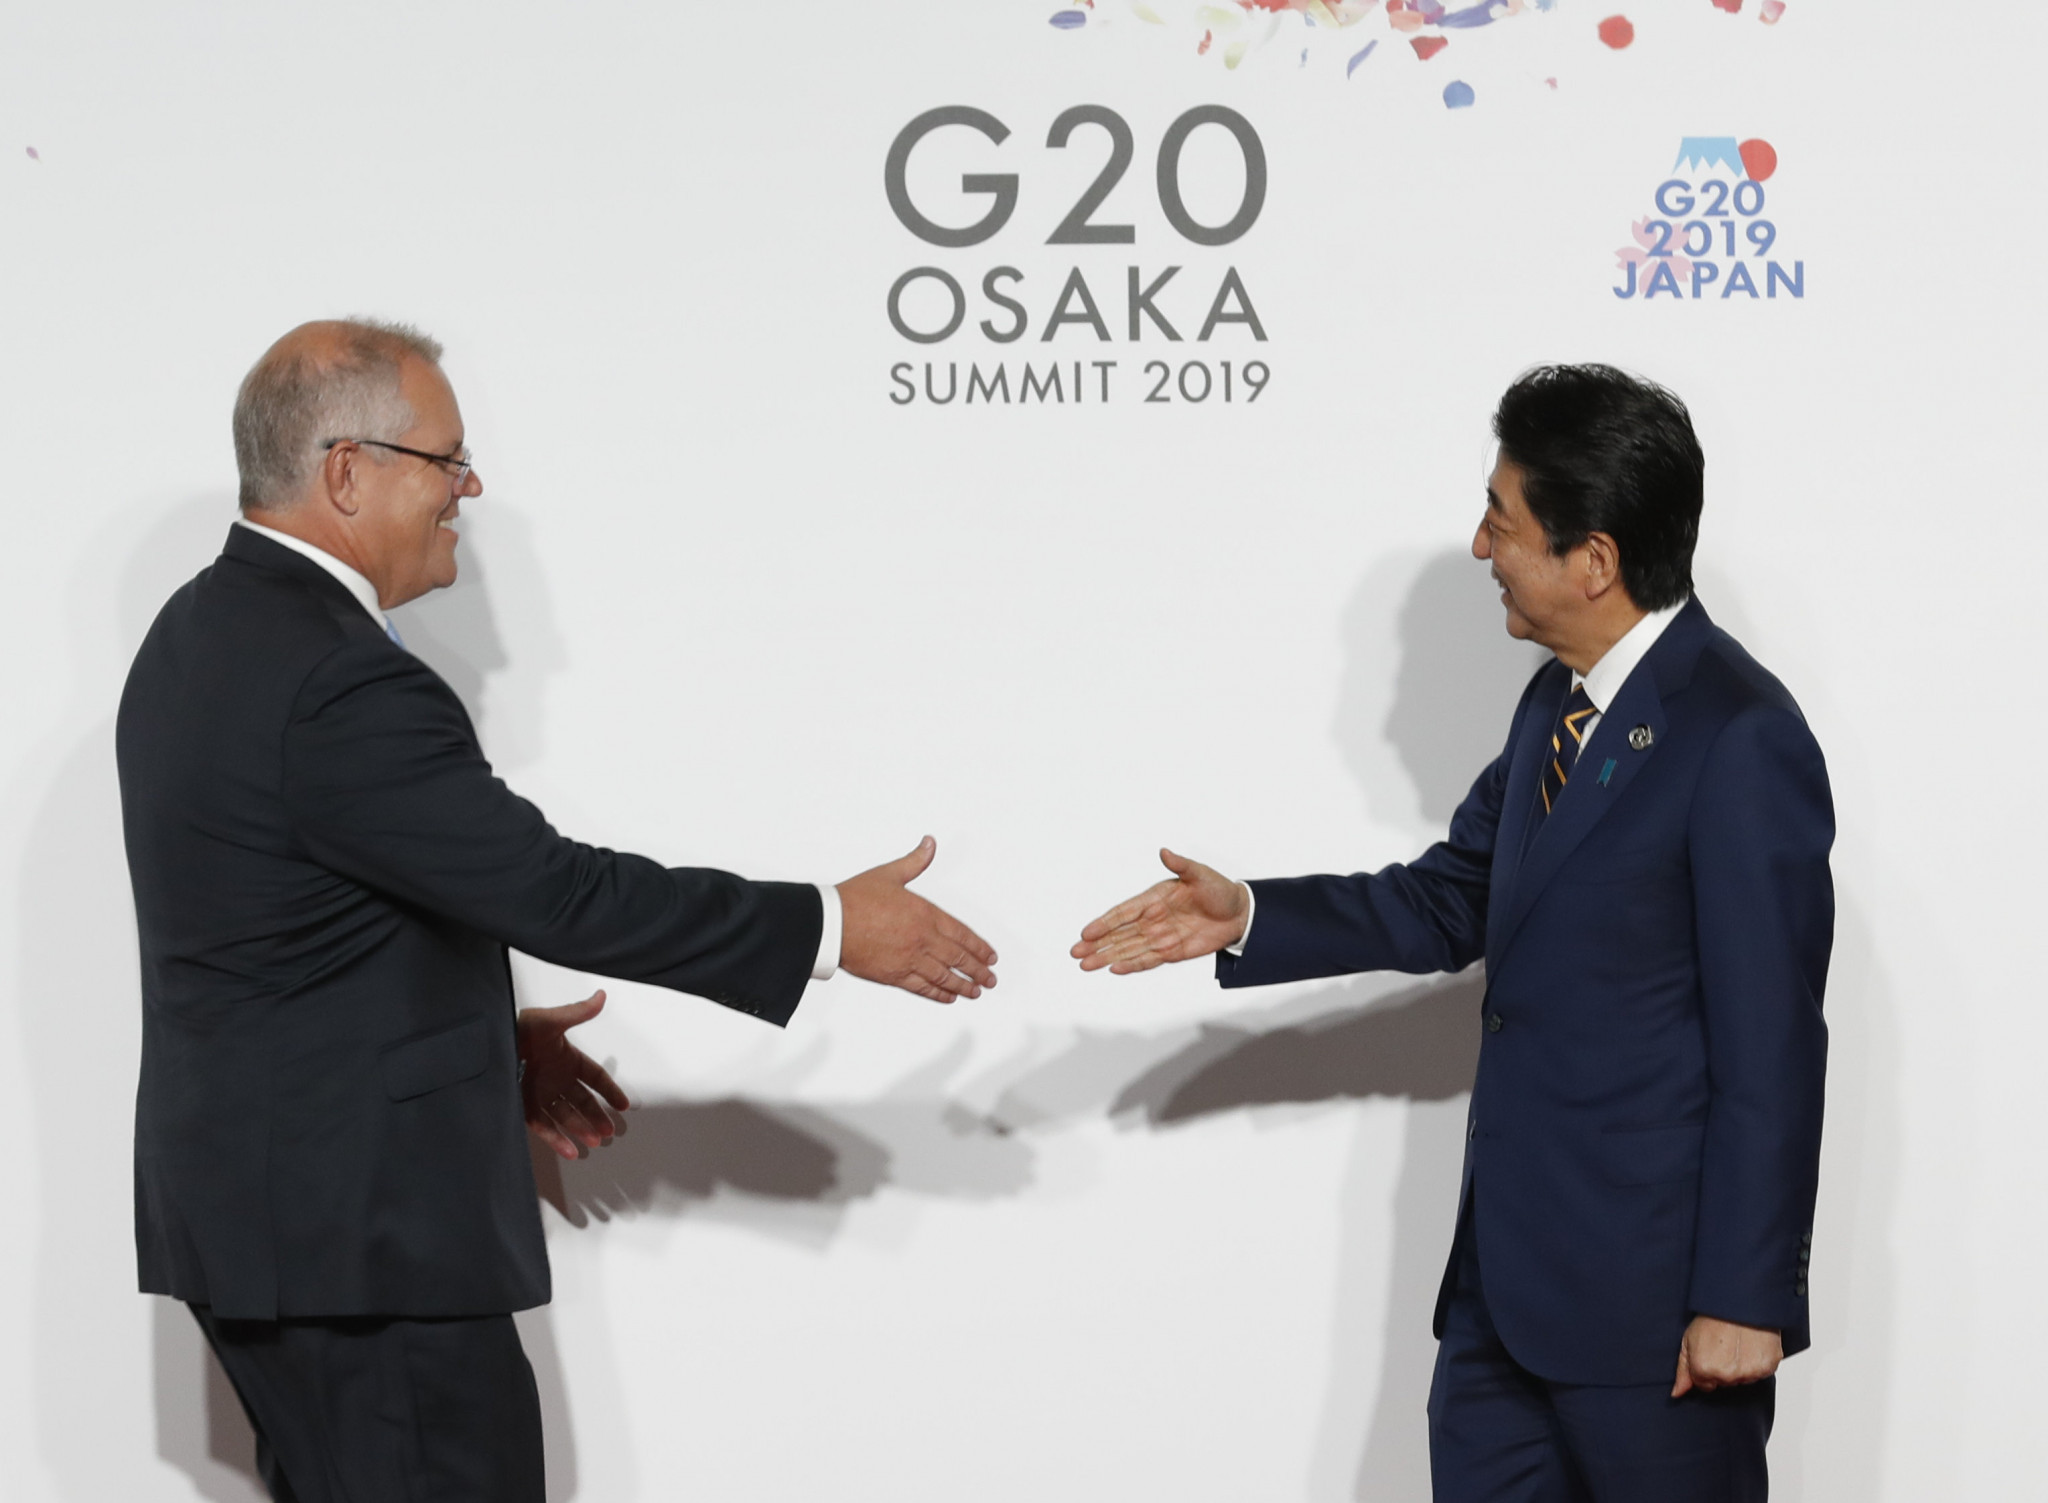 Australia's Prime Minister Scott Morrison, left, confirmed his backing for an Olympic bid from South Queensland in 2032 after attending the G20 Summit in Osaka, where he met IOC President Thomas Bach ©Getty Images